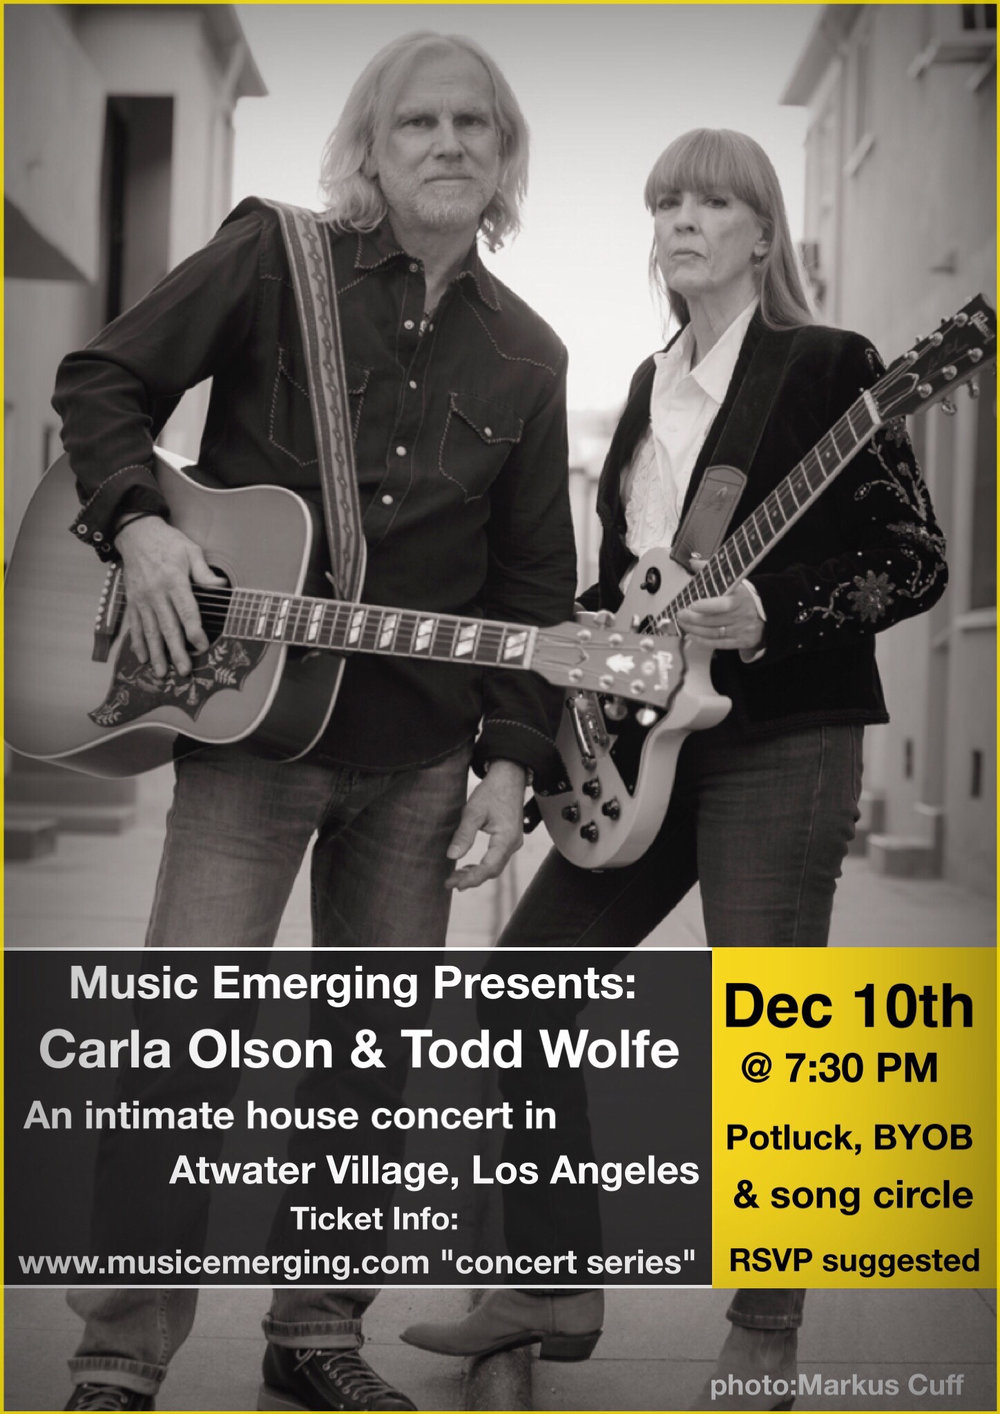 Music Emerging  presents another stellar concert in Atwater Village, Los Angeles with artists Carla Olson and Todd Wolfe. This is our 6th successful show!  Concert will take place in the home of artist  Robert Soffian  Seating is limited so an RSVP ticket is highly recommended. Upon ticket order-you will receive address within a few hours...  TICKETS: available through  EVENTBRITE   Event is BYOB and a dish for pot luck. Plenty of parking in the area. Song circle after if you would like to bring instrument or borrow one.  About the Artists:   Carla Olson  is a singer, songwriter, guitar player and producer. Her 1984 debut album, Midnight Mission, was as leader of the Textones and included Gene Clark, Ry Cooder and Don Henley as guests. A few years later Gene and Carla recorded what many view as the first Americana album, So Rebellious A Lover. Since then Carla has released solo albums and a live record with Mick Taylor.  She is one of the few currently active women record producers and includes among her credits Paul Jones, (Manfred Mann), Phil Upchurch, Jake Andrews, Joe Louis Walker, Chubby Tavares and Barry Goldberg (Electric Flag, The Rides).  Her recent duets album, Have Harmony, Will Travel, featured Richie Furay, Rob Waller, Juice Newton, John York and James Intveldt.    Todd Wolfe  spent five years touring the world with Sheryl Crow including writing and recording with Sheryl.   Since Todd's departure from Sheryl's band, he has spent the past 15 years touring Europe with his own band and releasing nine solo albums.  Todd has also recorded with legendary Mountain guitarist-singer Leslie West, lending his guitar to two Mountain albums and three of Leslie's solo albums.  Before Todd's work with Sheryl Crow and Leslie West he recorded and toured Japan with Carla Olson.  Some of Todd's songs have been covered by artists, Stevie Nicks, Faith Hill and Deborah Coleman, to name a few.  Together Carla & Todd perform original songs and some favorites by others in an intimate duo setting.   Carla Olson website    Todd Wolfe website   Opening up the show is acoustic duo  Cynthia Brando and Ed Tree .  Questions? Email musicemerging@gmail.com